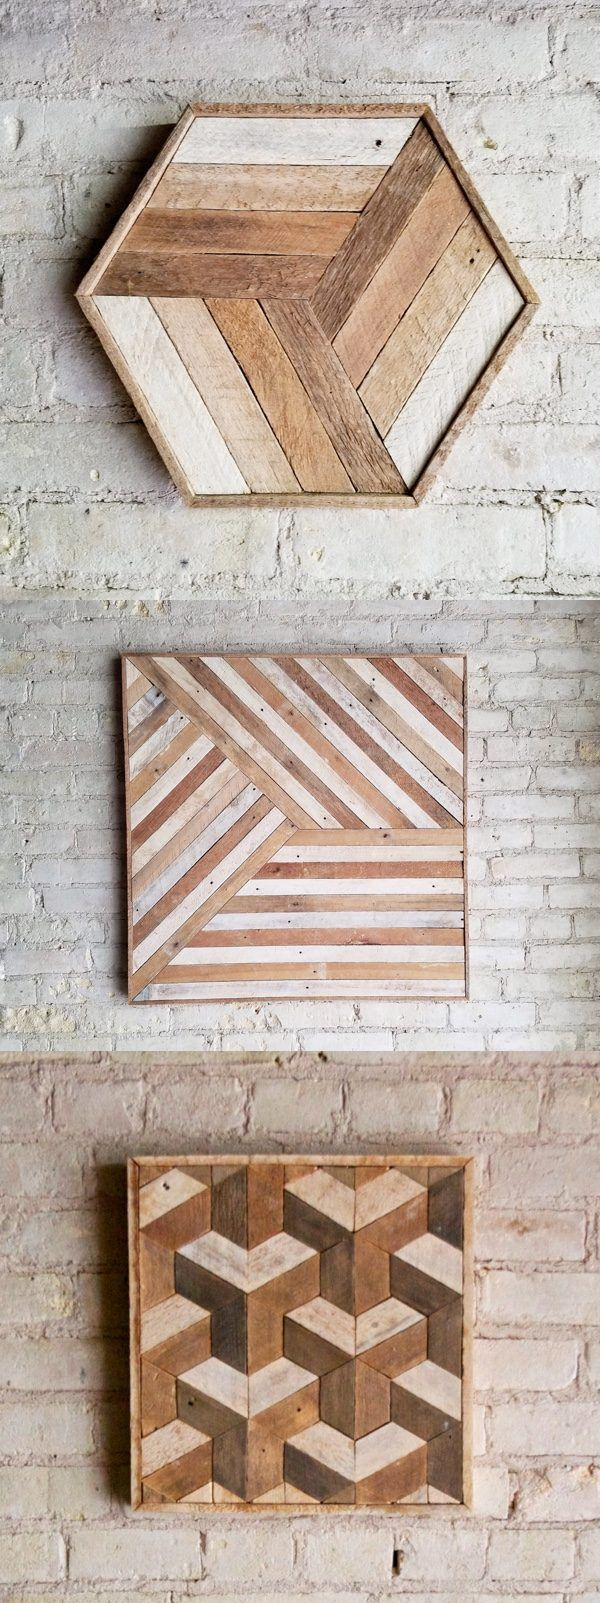 Best 25 Wood Wall Art Ideas On Pinterest Reclaimed Wood Art 3 Piece Wall Art And Pallet Wall Art